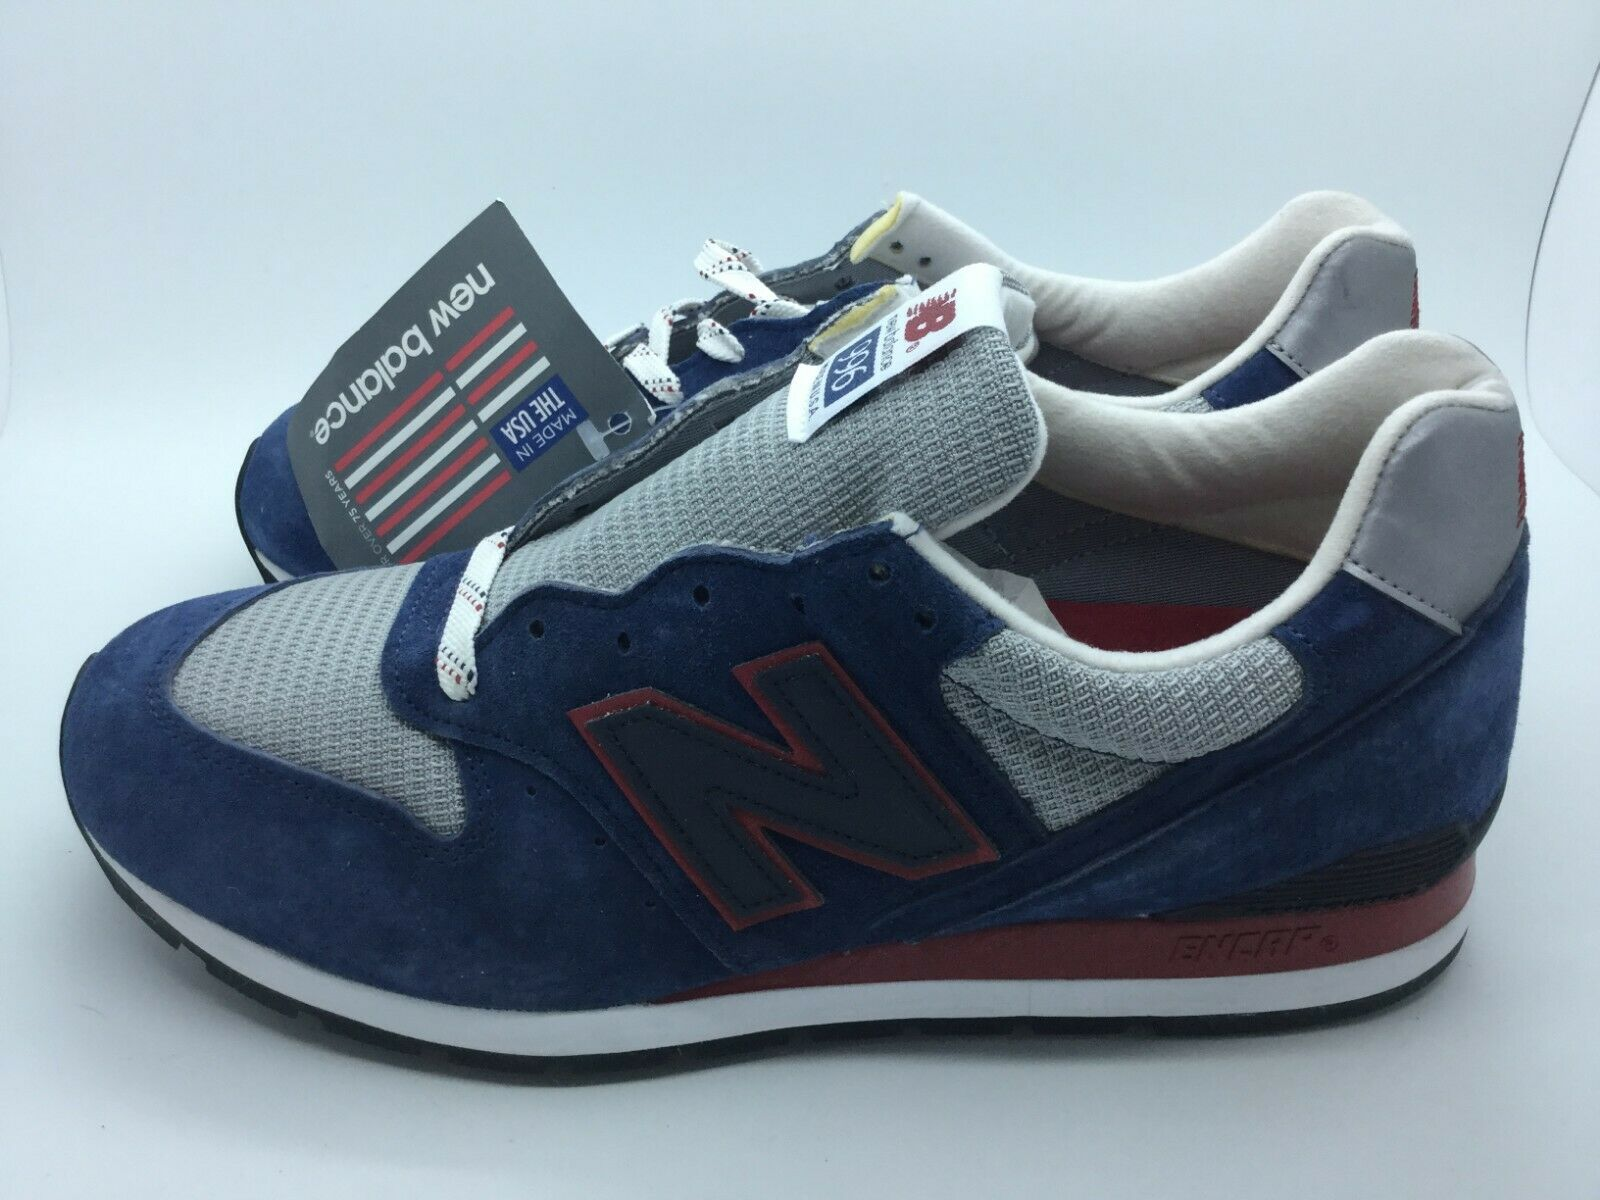 New Balance Men's Fashion Sneakers Casual Athletic M996CMB Rare Sizes 10 No Box